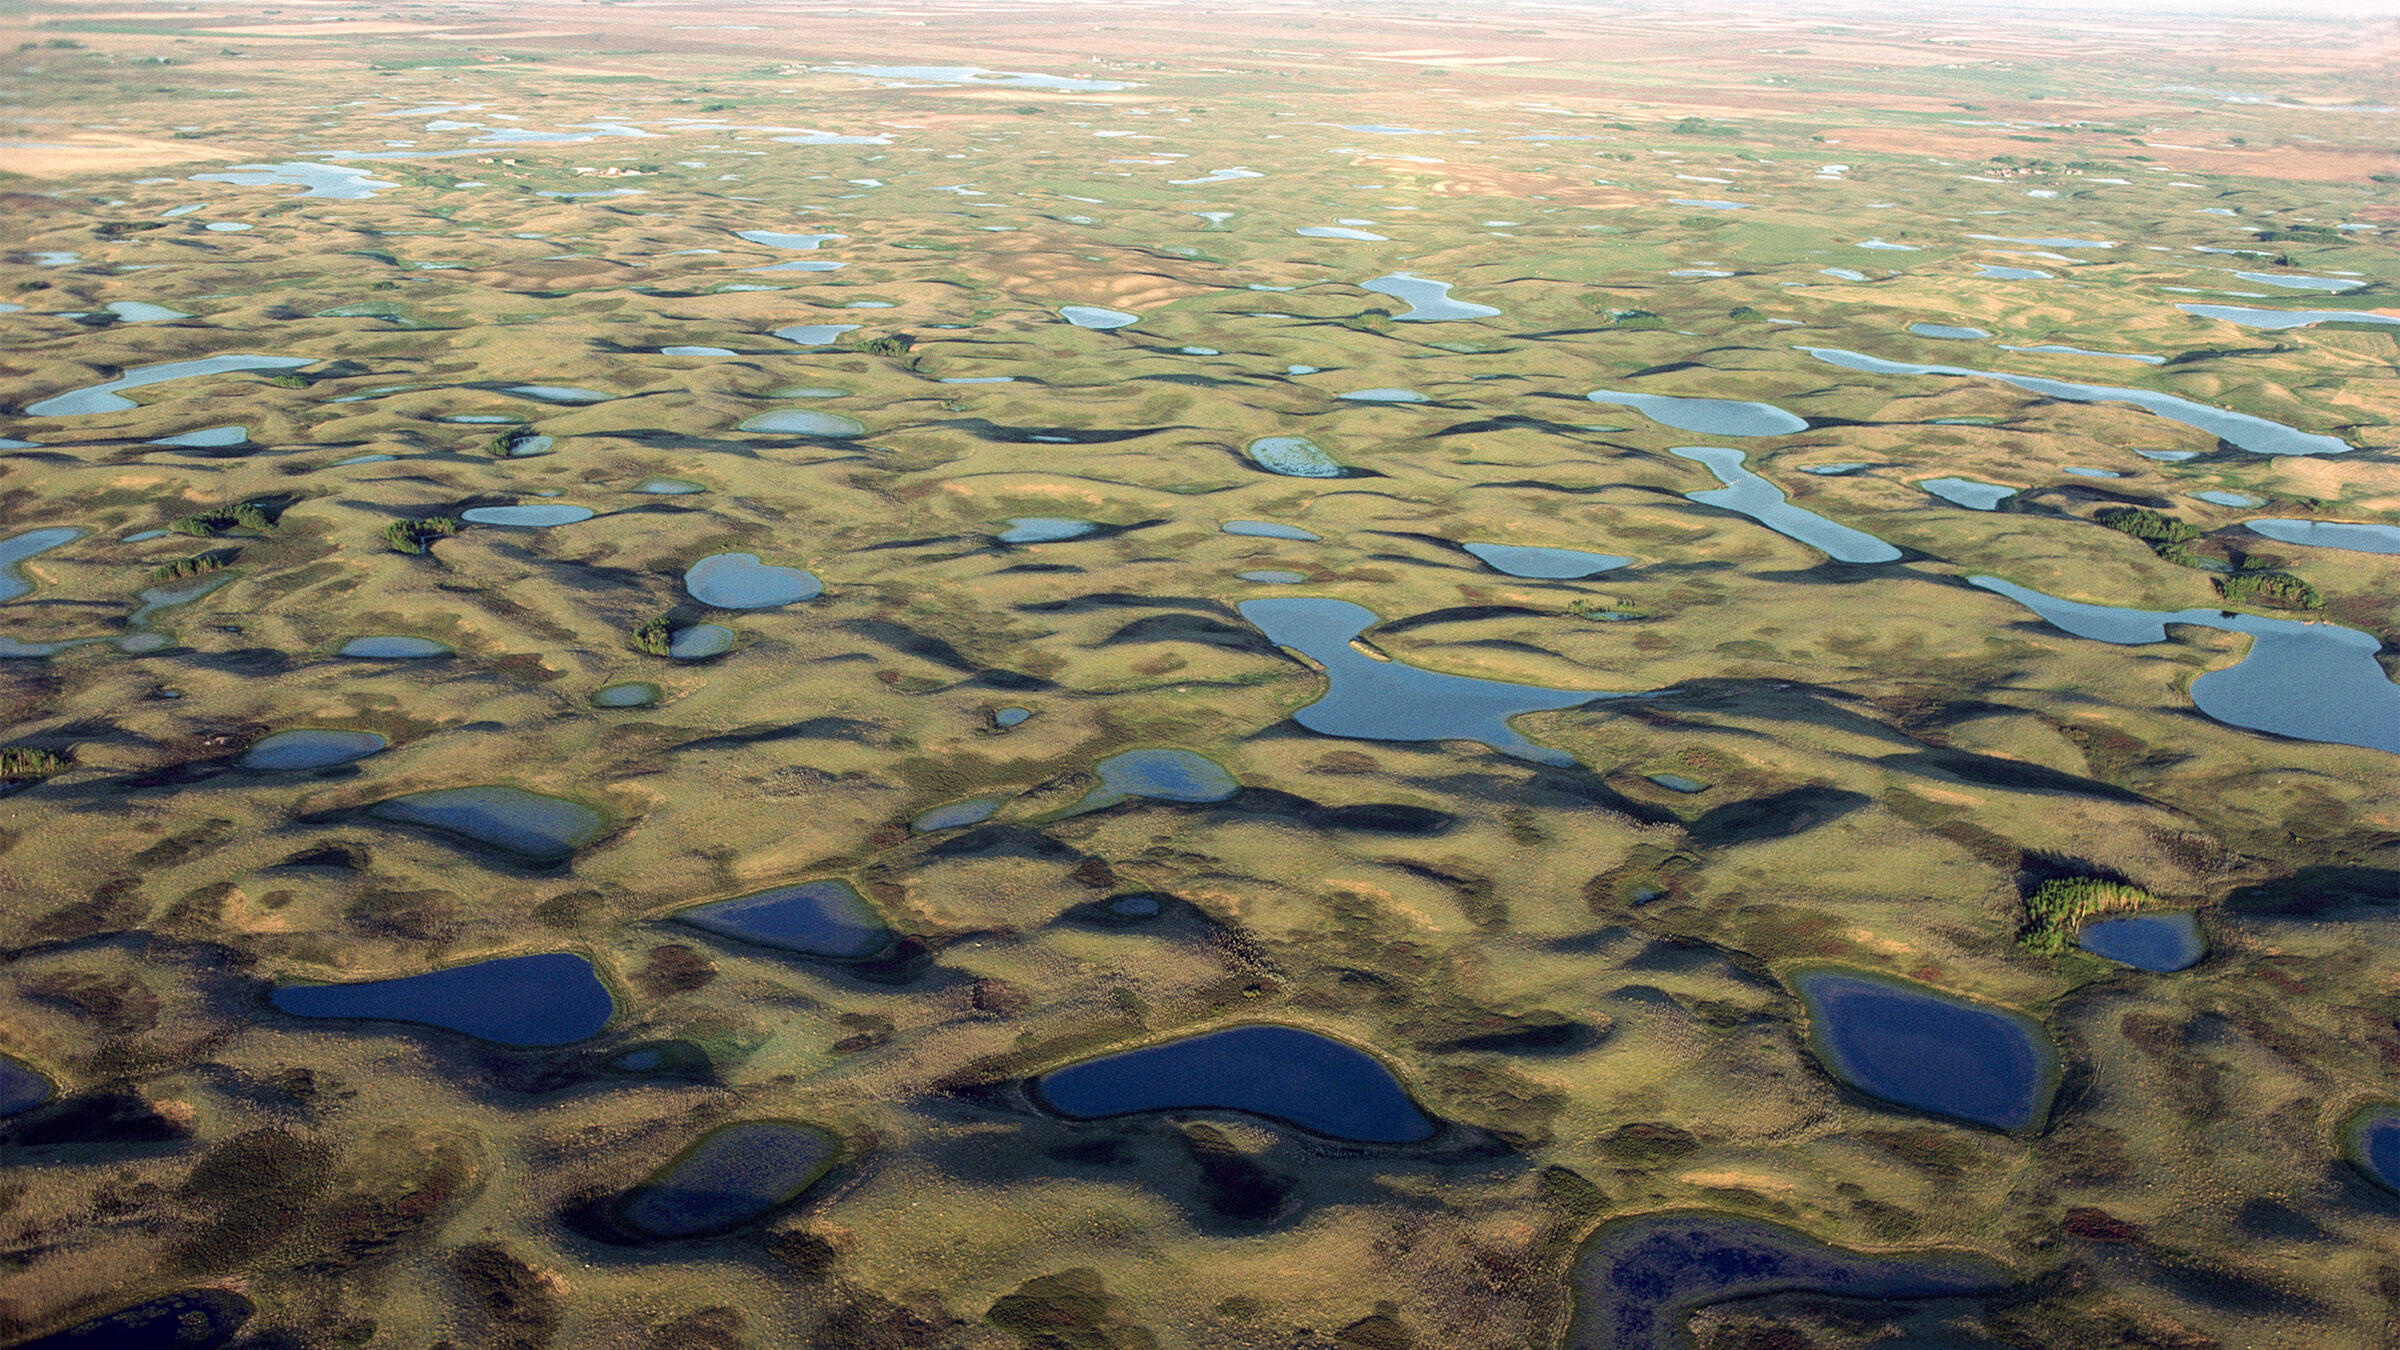 Aerial view of prairie pothole region, a unique area where shallow depressions created by the scouring action of glaciation creates wetland habitat, South Dakota. Jim Brandenburg/Minden Pictures